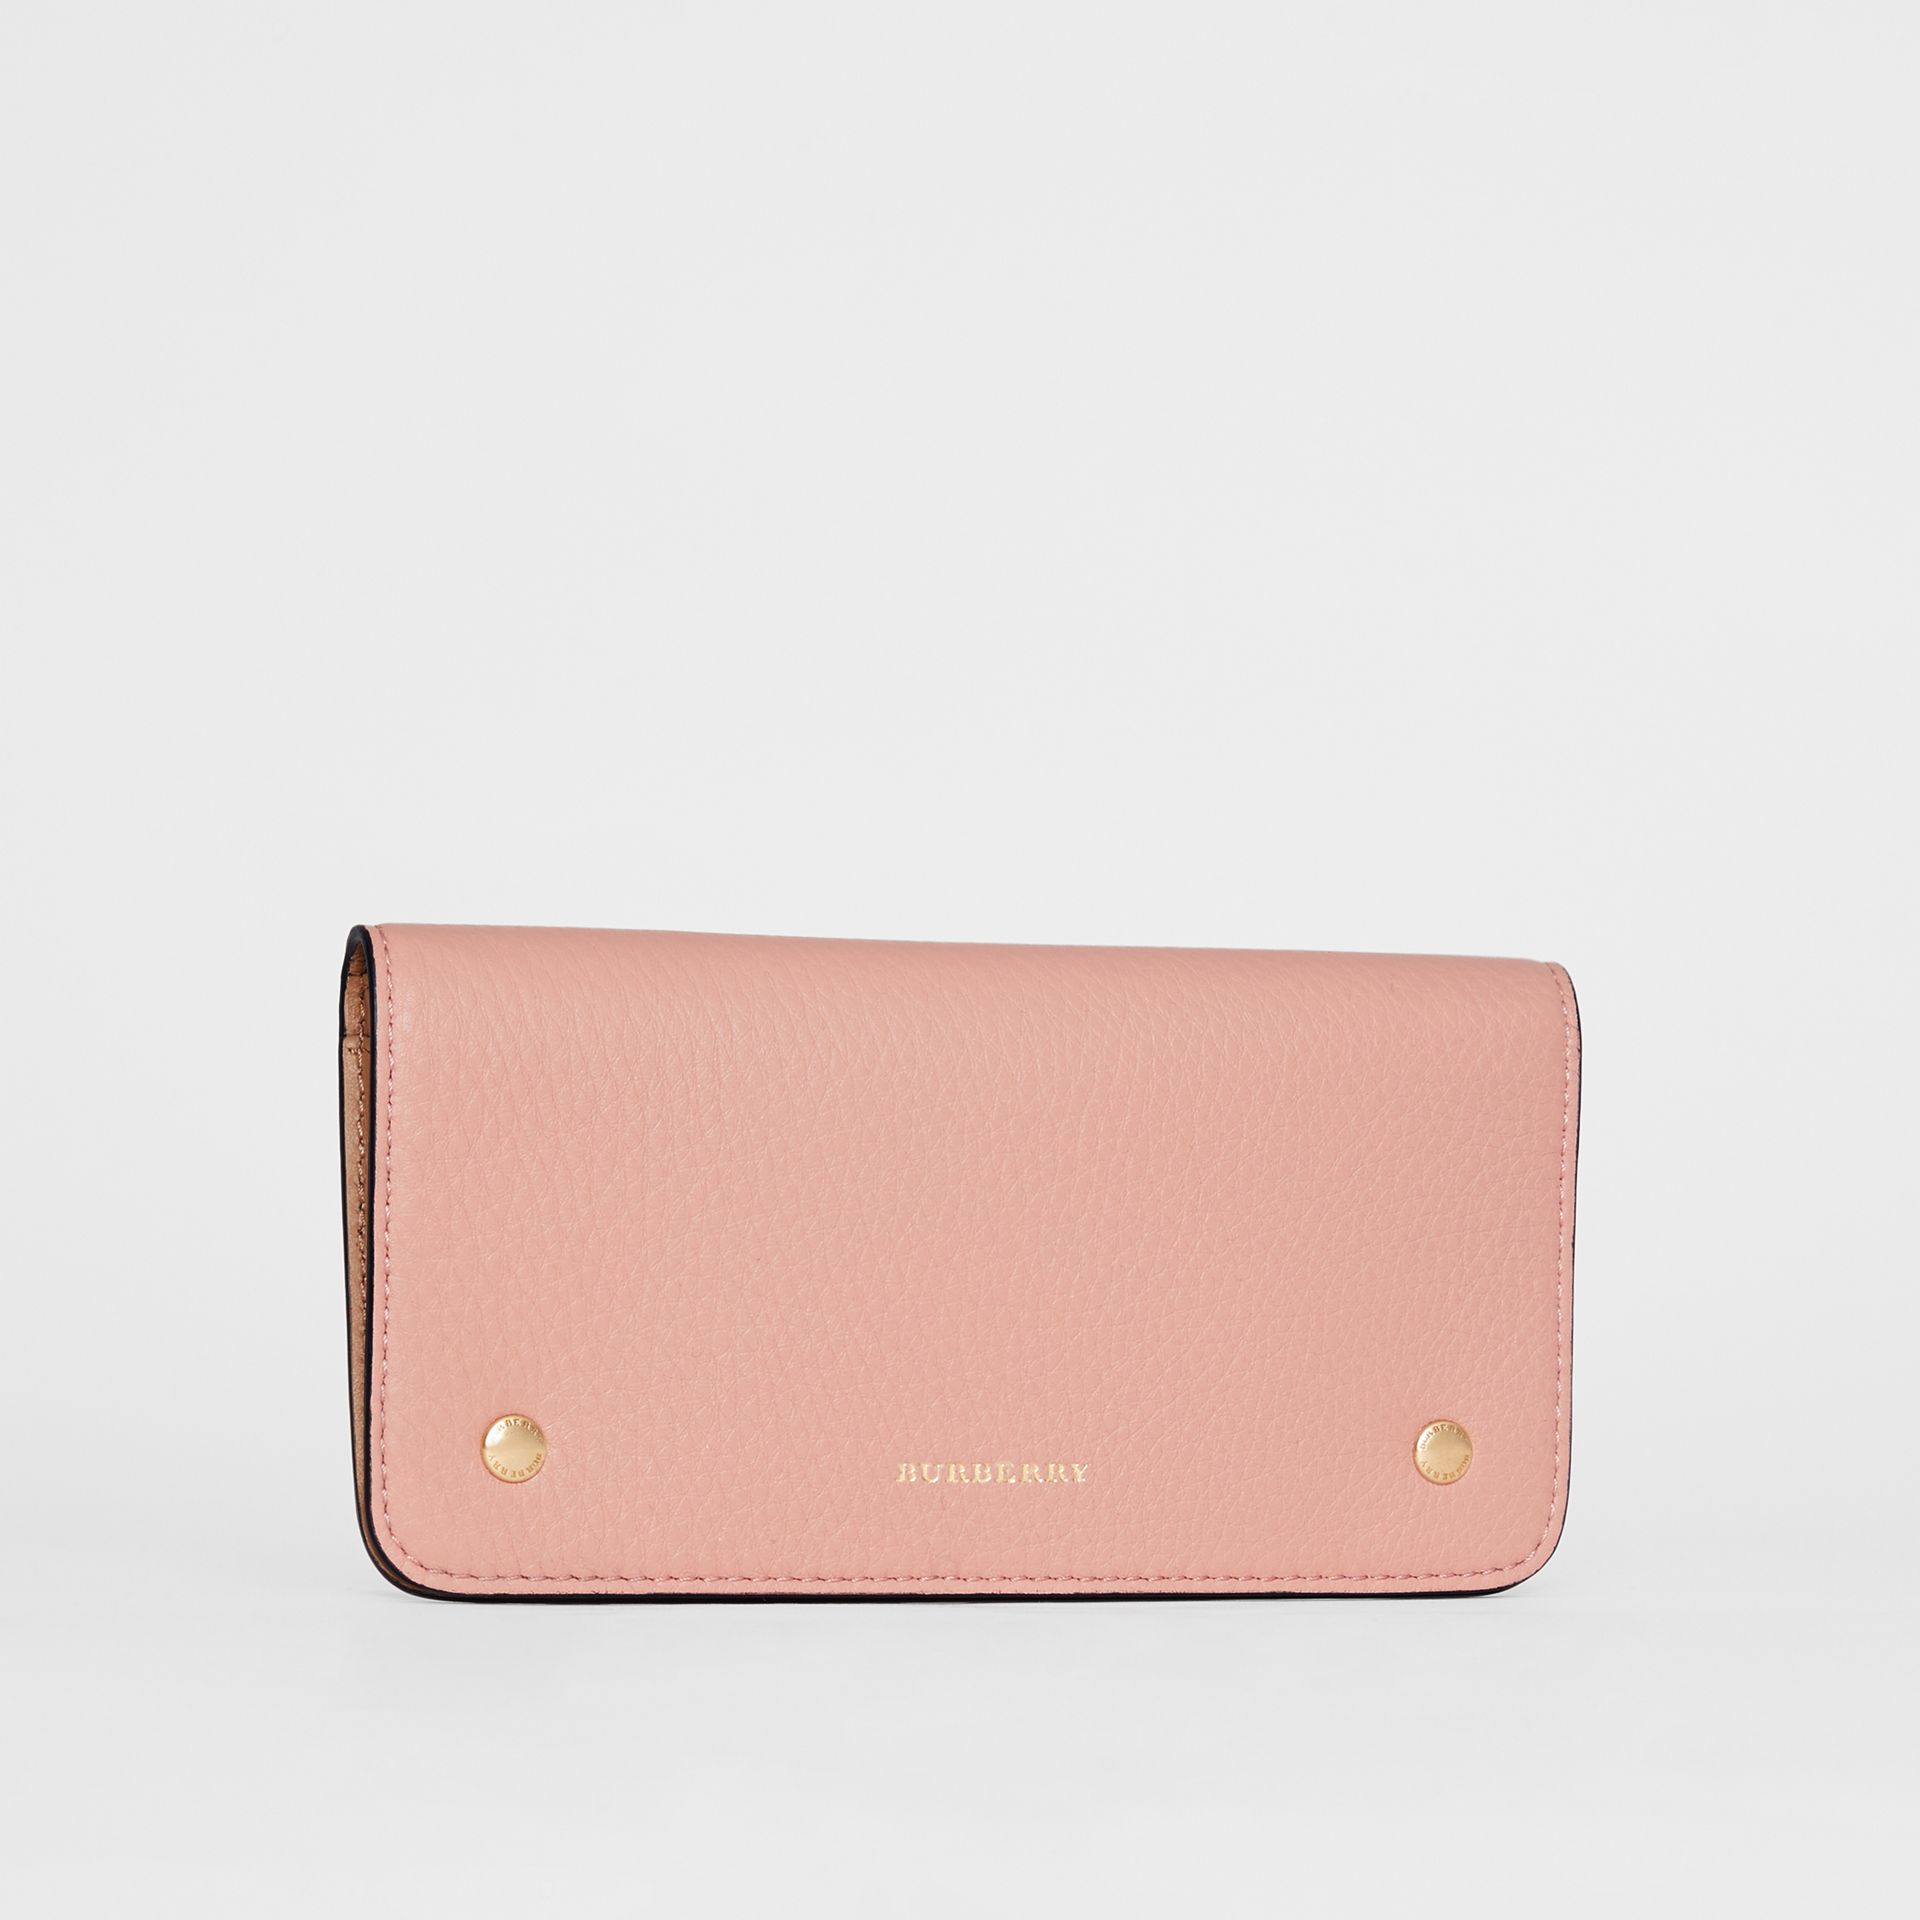 Leather Phone Wallet in Ash Rose - Women | Burberry United Kingdom - gallery image 4